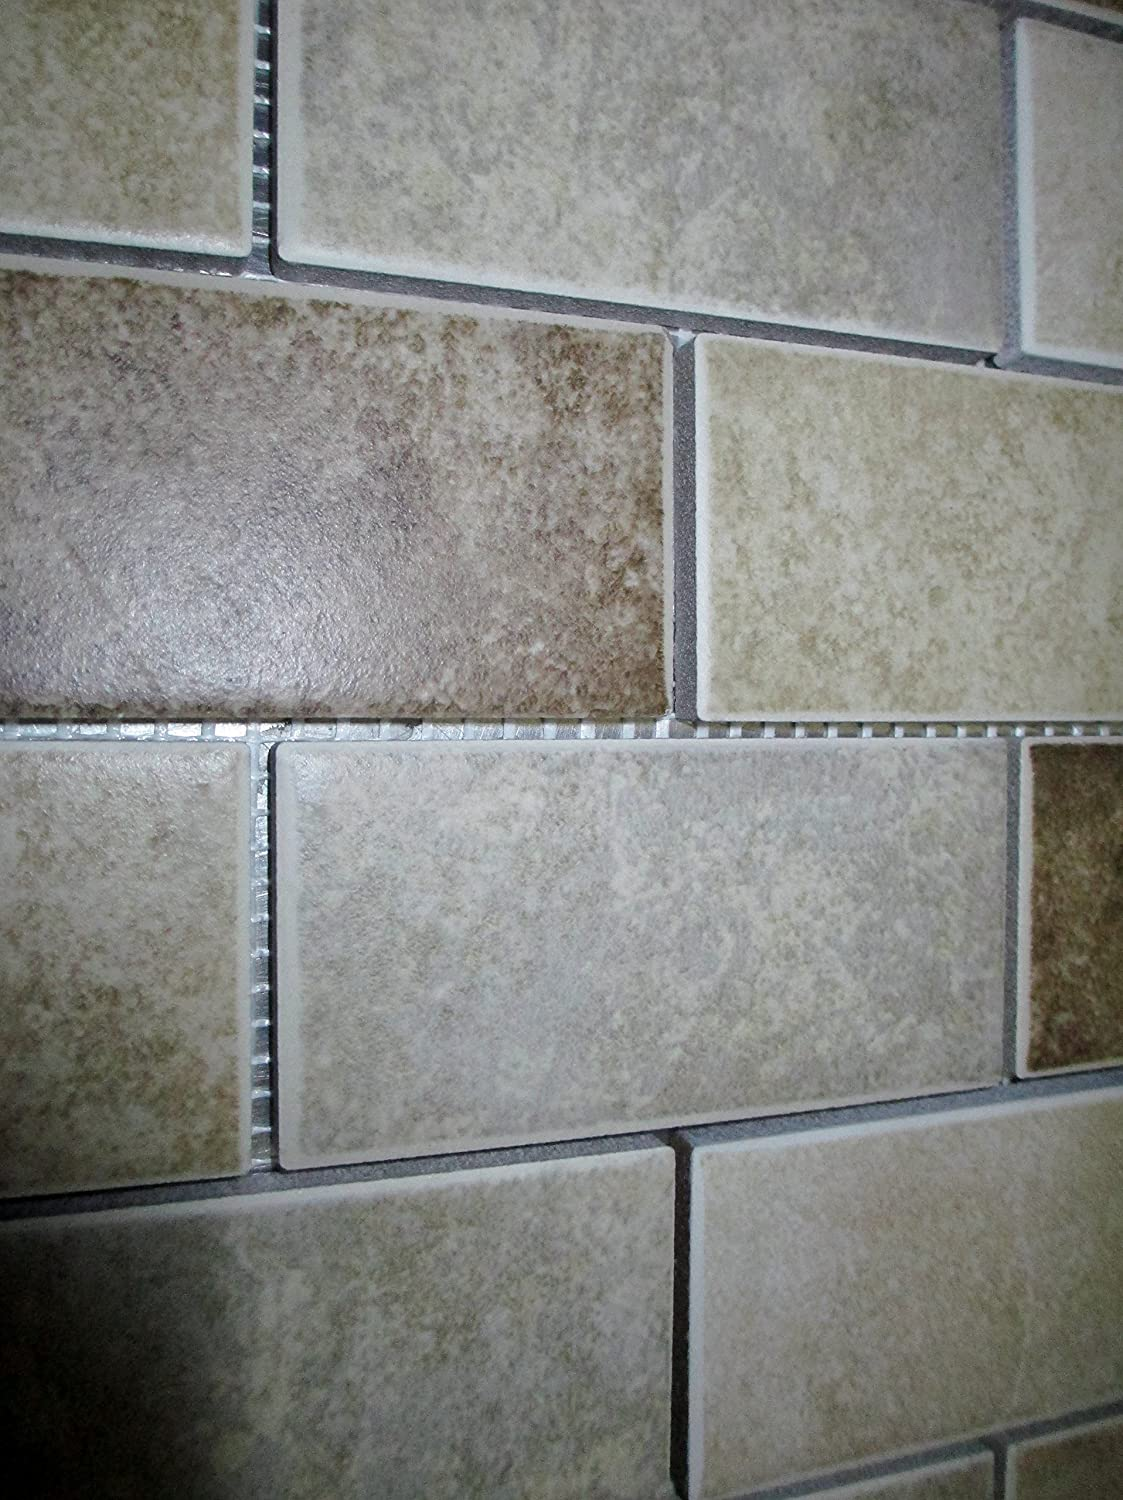 Daltile Santa Barbara Pacific Sand Blend 12 in  x 12 in  x 6 mm Mosaic  Floor and Wall Tile     Amazon com. Daltile Santa Barbara Pacific Sand Blend 12 in  x 12 in  x 6 mm